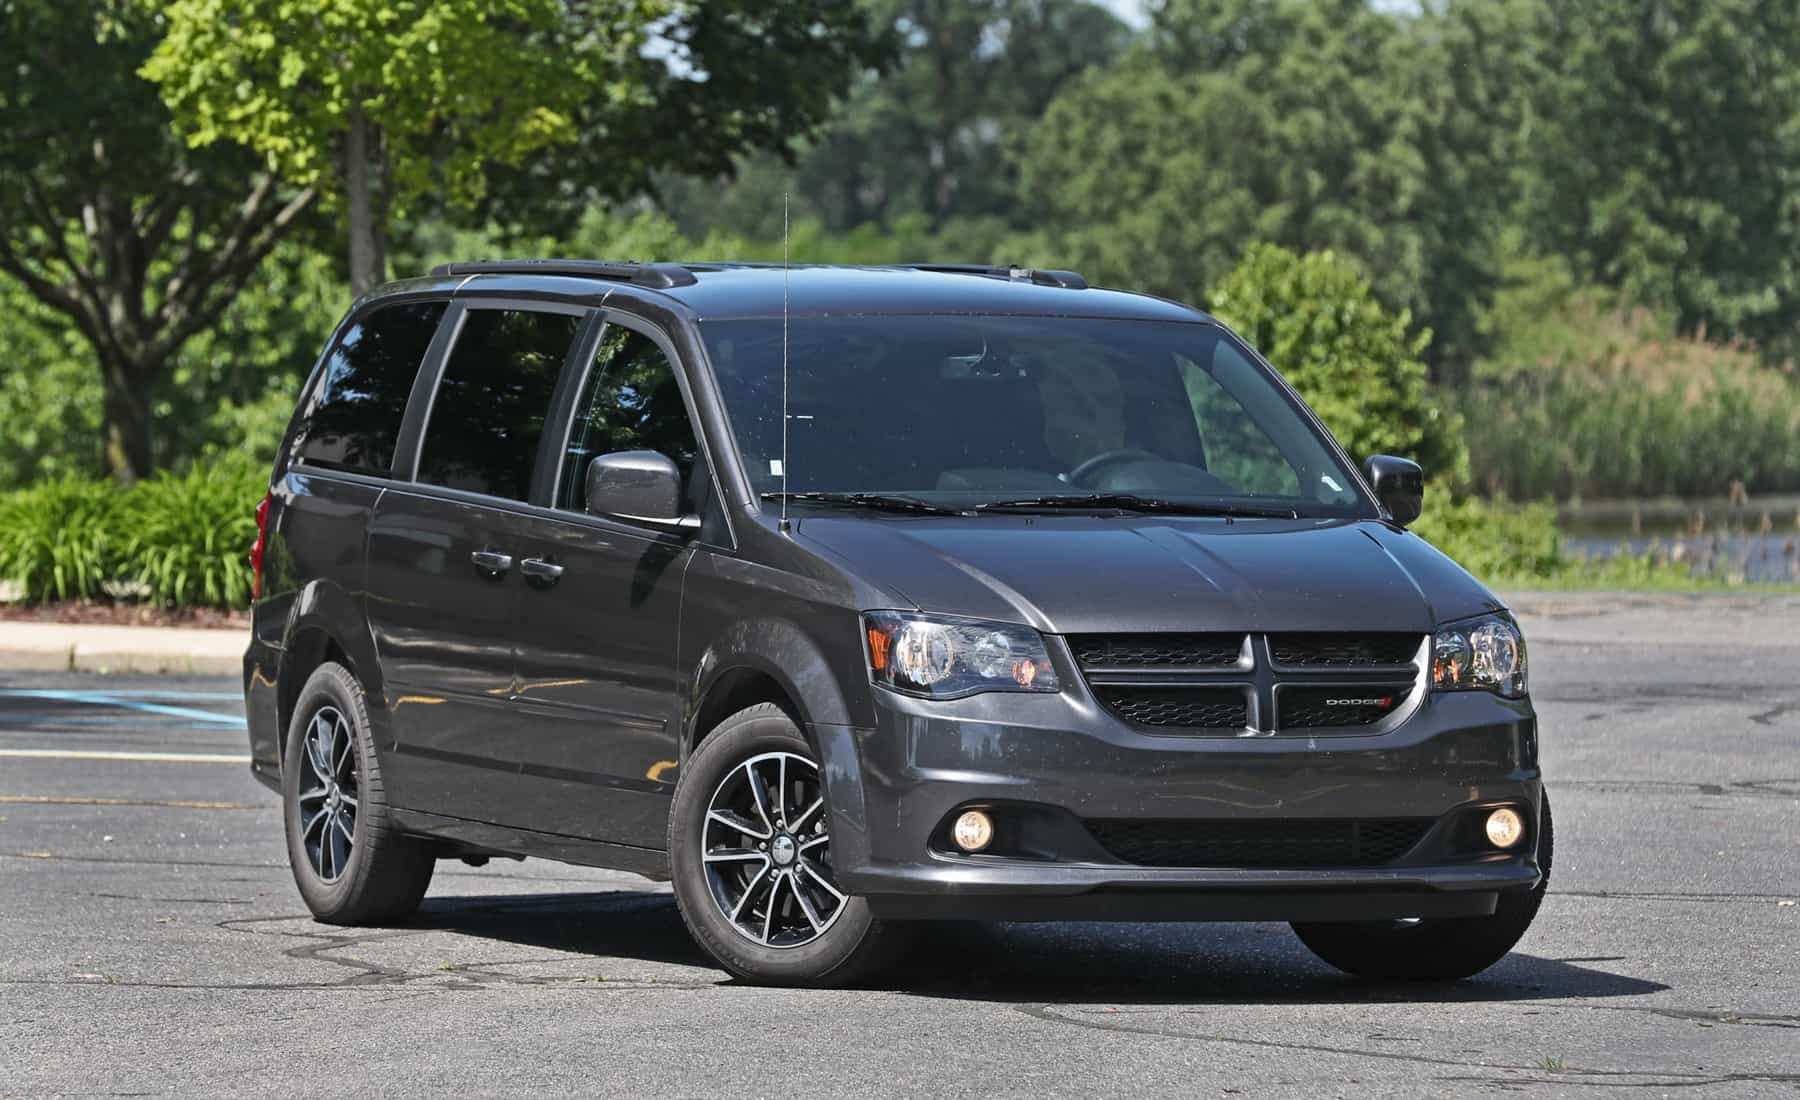 2017 Dodge Grand Caravan Exterior Front And Side (Photo 4 of 47)